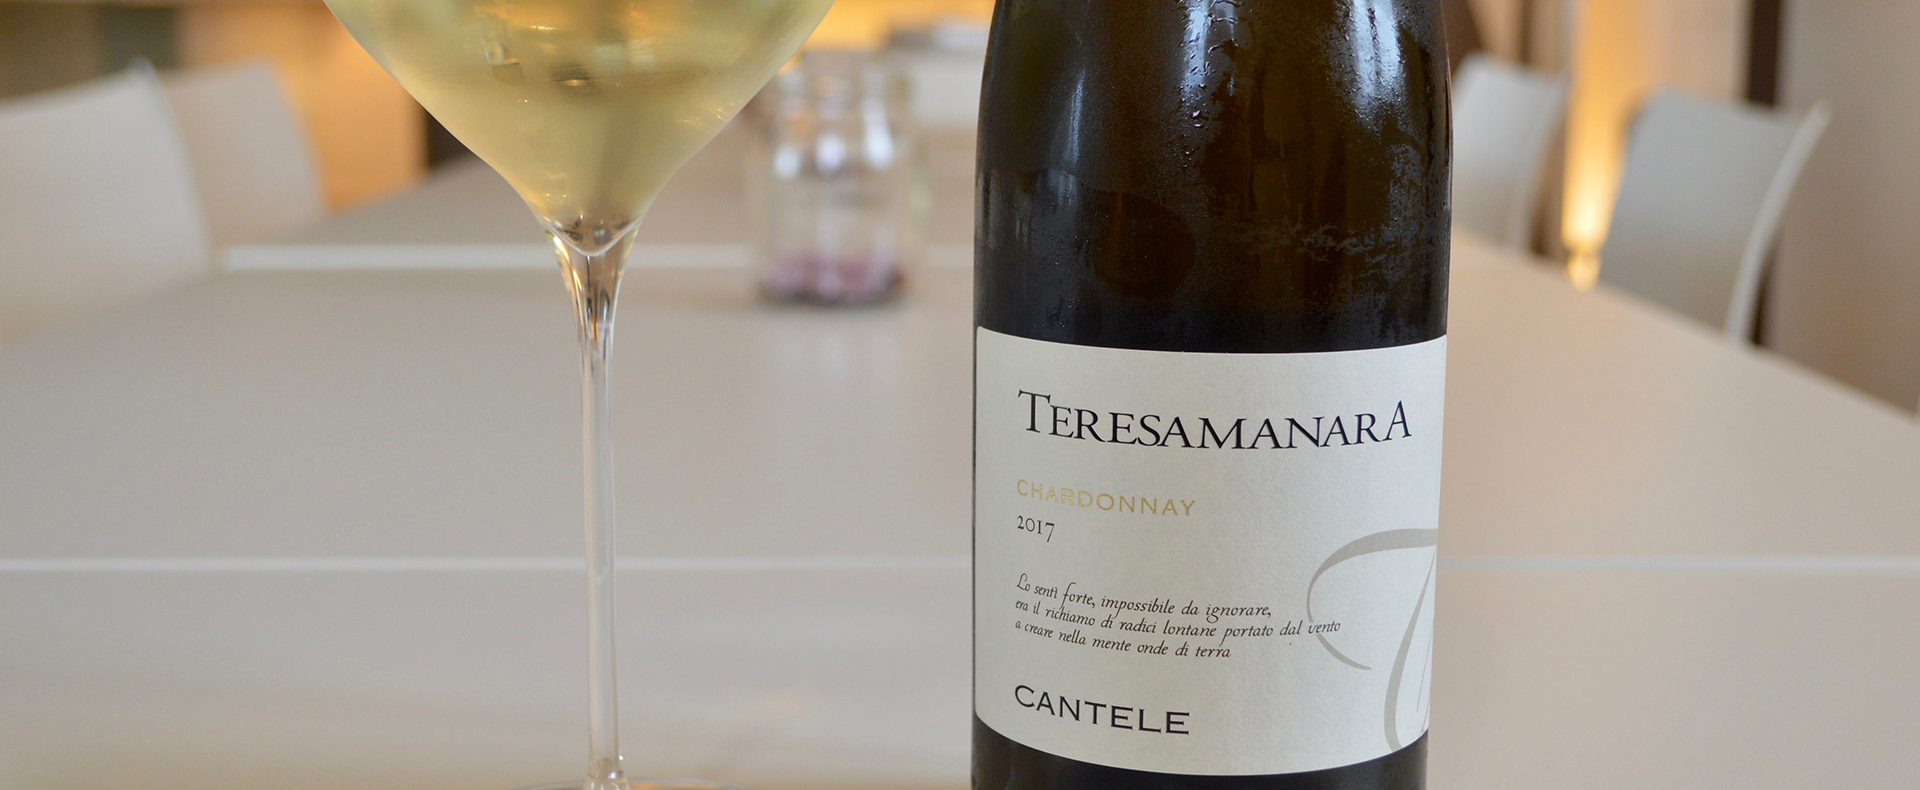 "Coming soon to America: Teresa Manara Chardonnay 2017, a ""spectacular vintage"""